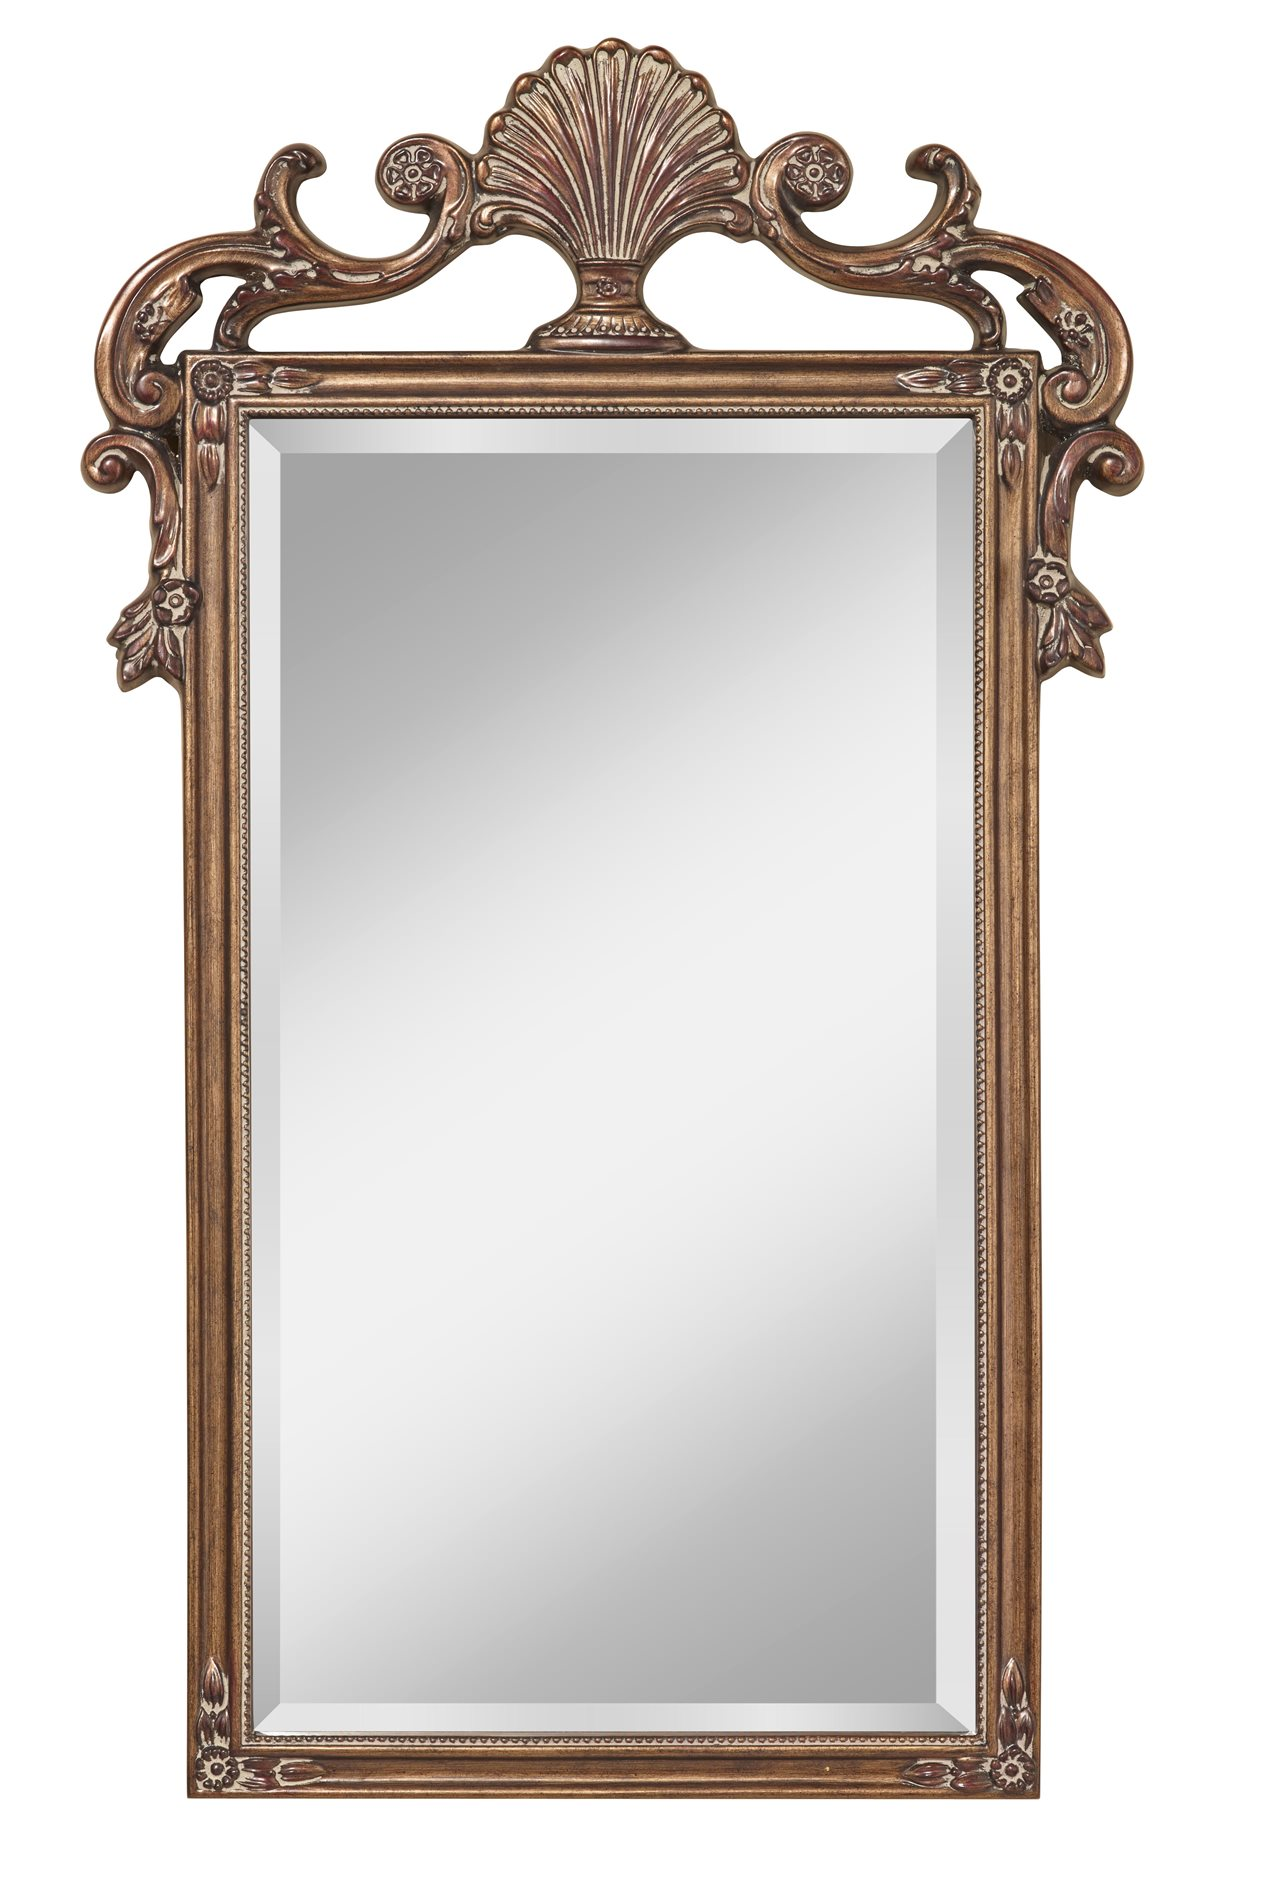 Murray feiss mr1188ag traditional rectangular mirror mrf for Traditional mirror